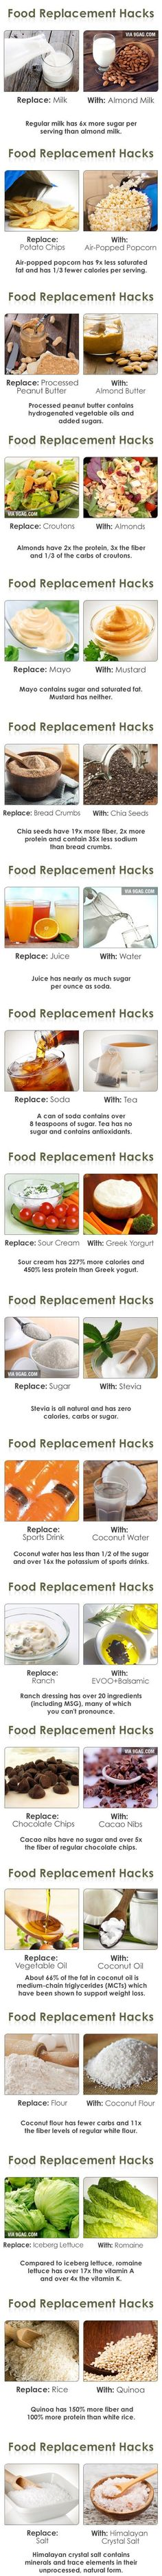 18 Food Replacement Hacks Worth Giving A Shot